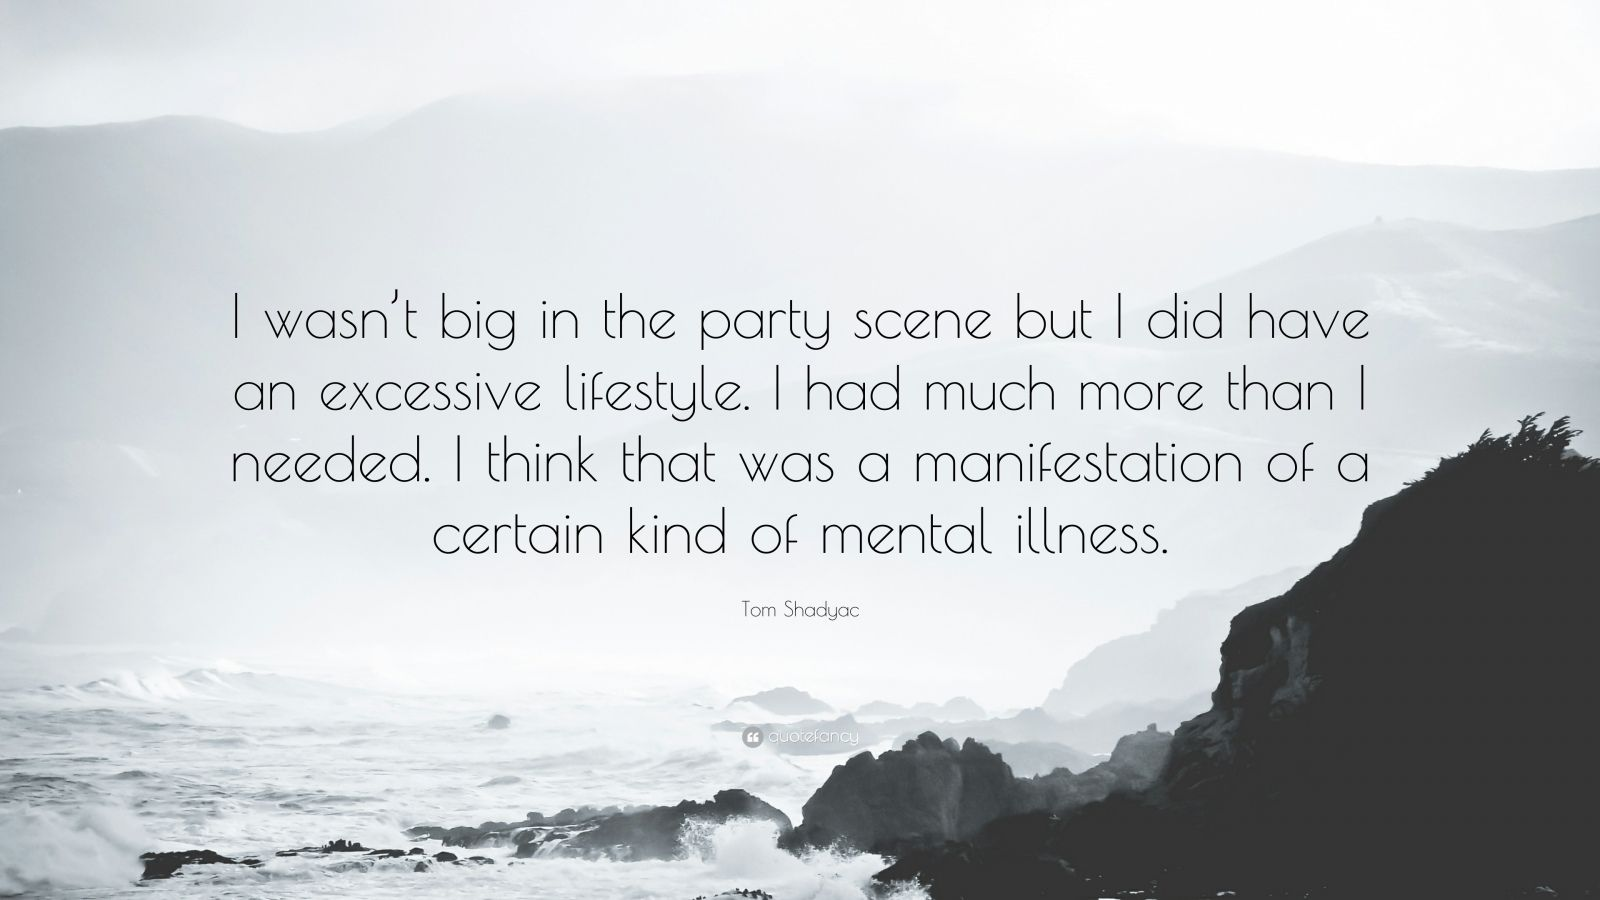 """Tom Shadyac Quote: """"I wasn't big in the party scene but I did have an excessive lifestyle. I had much more than I needed. I think that was a manifestation of a certain kind of mental illness."""""""